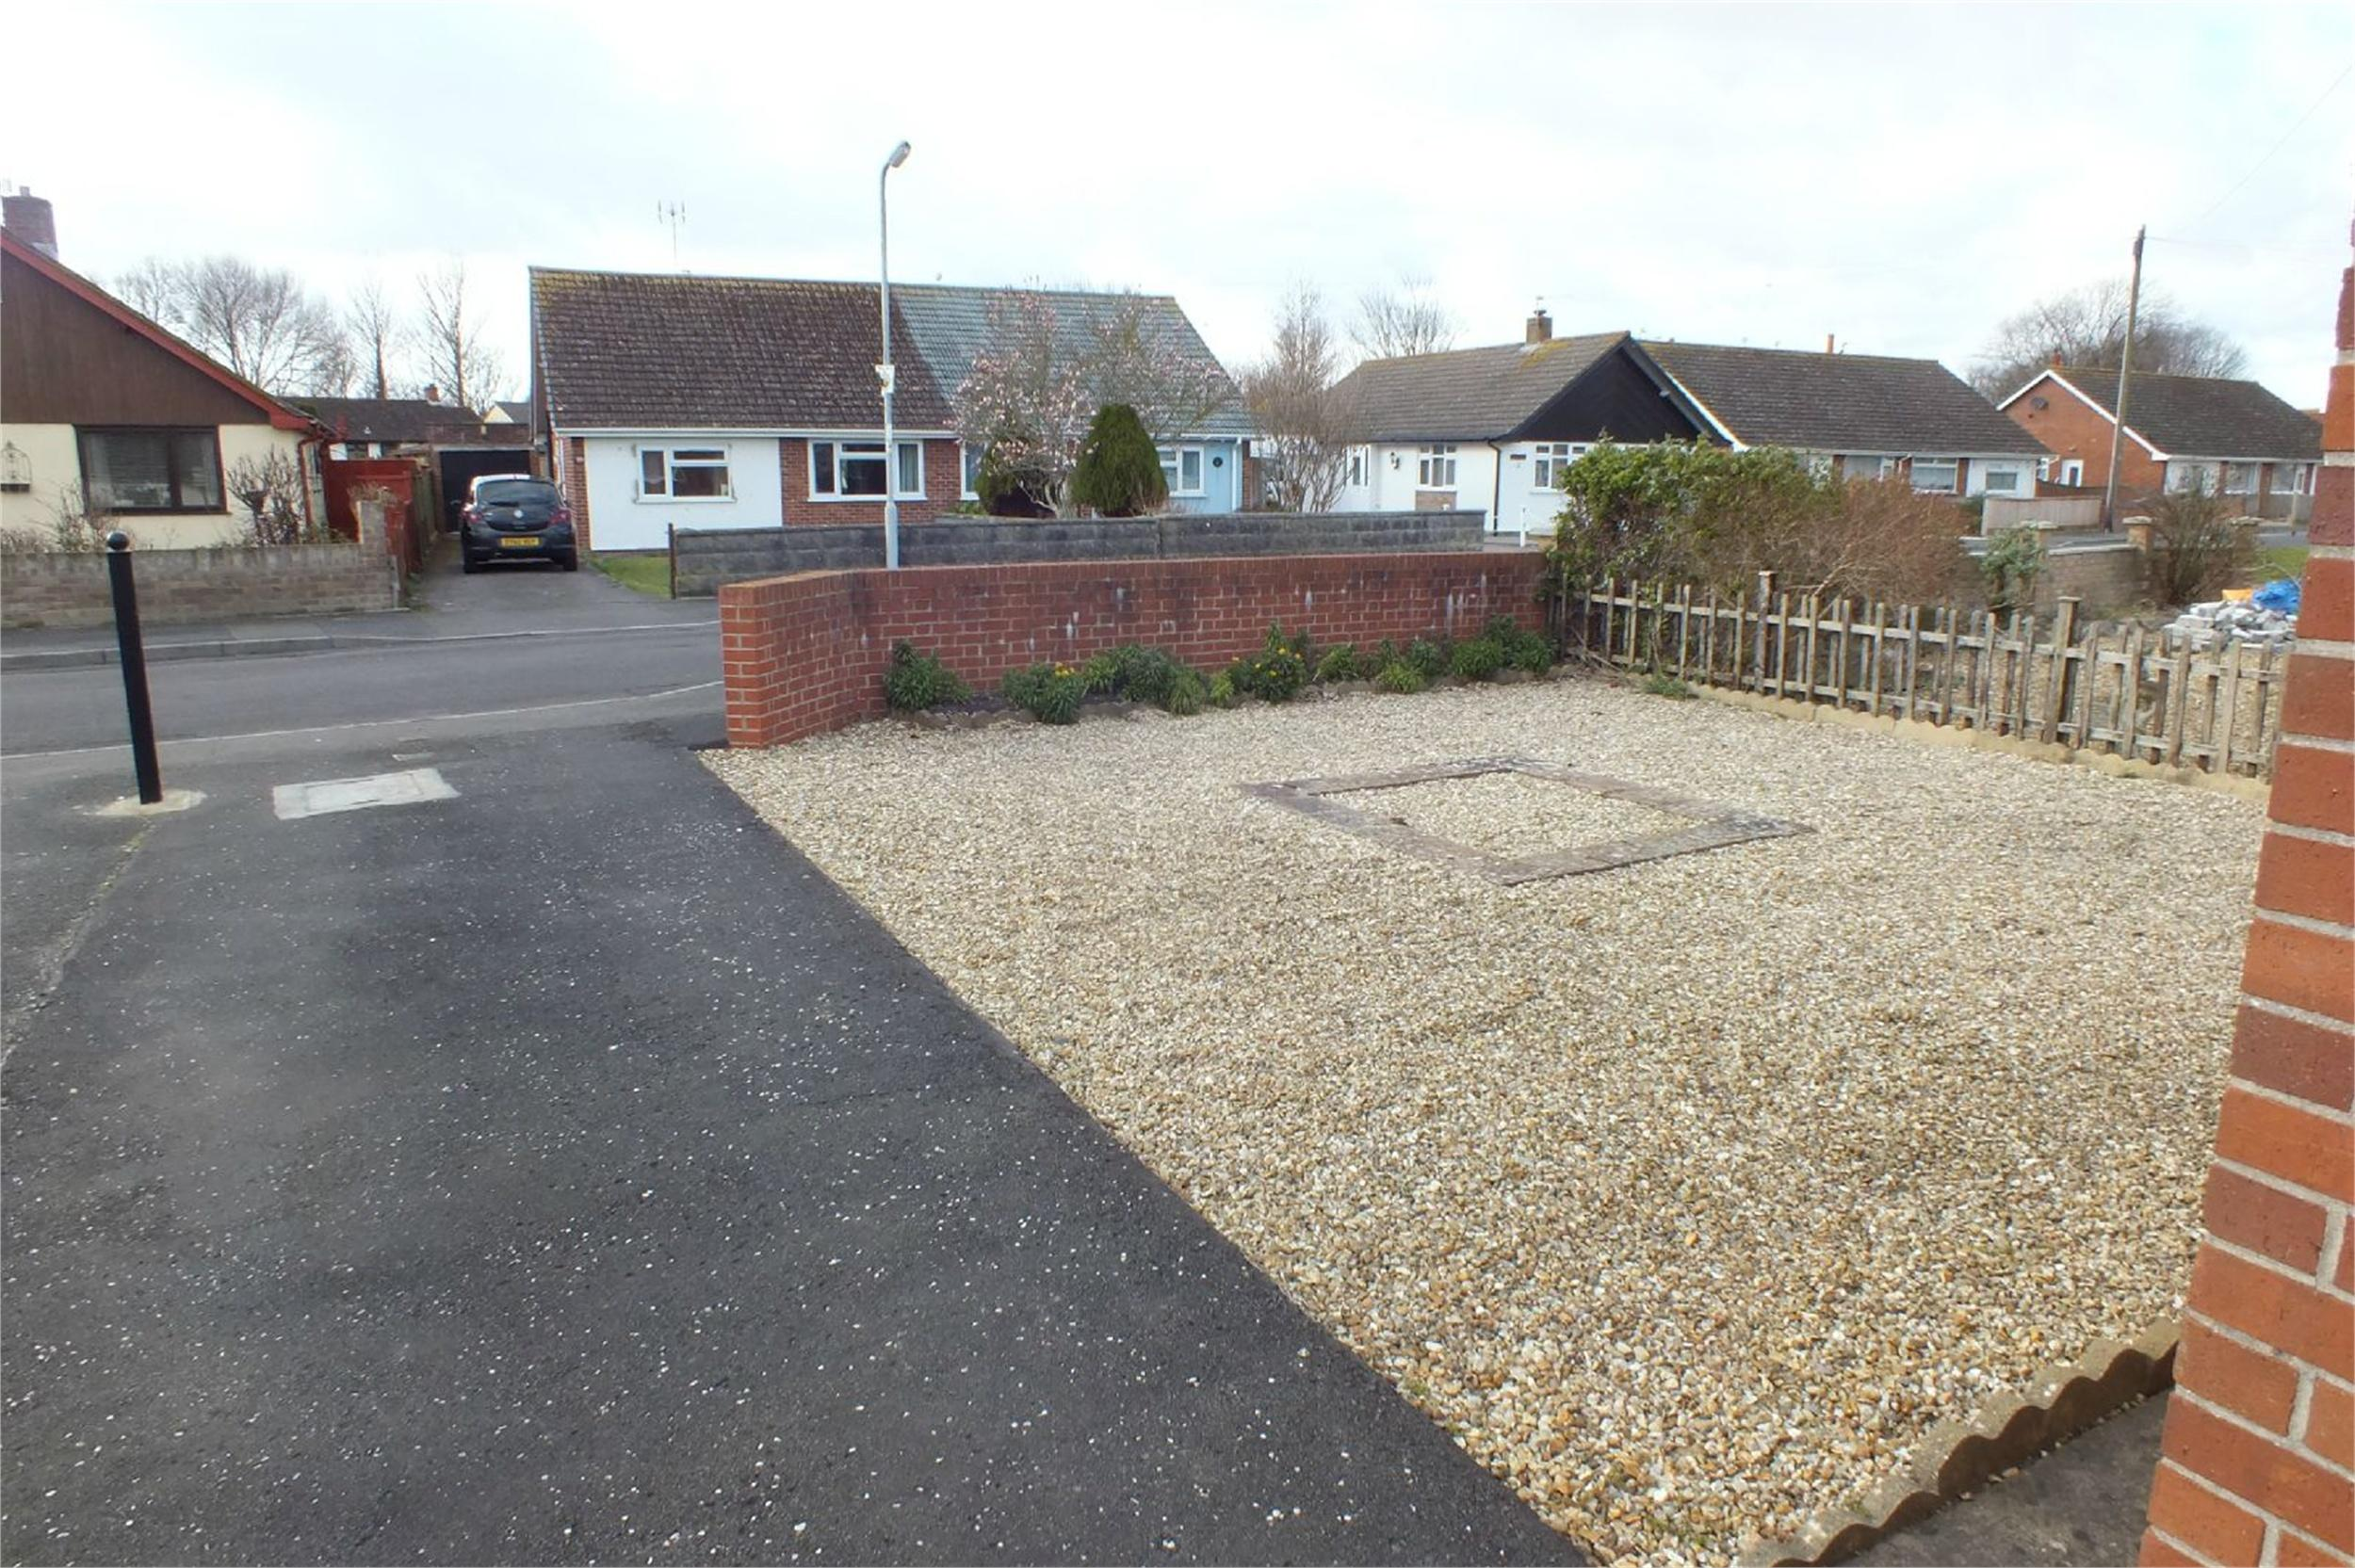 Cj hole burnham on sea 2 bedroom semi detached bungalow for sale in apex drive burnham on sea Taunton swimming pool station road